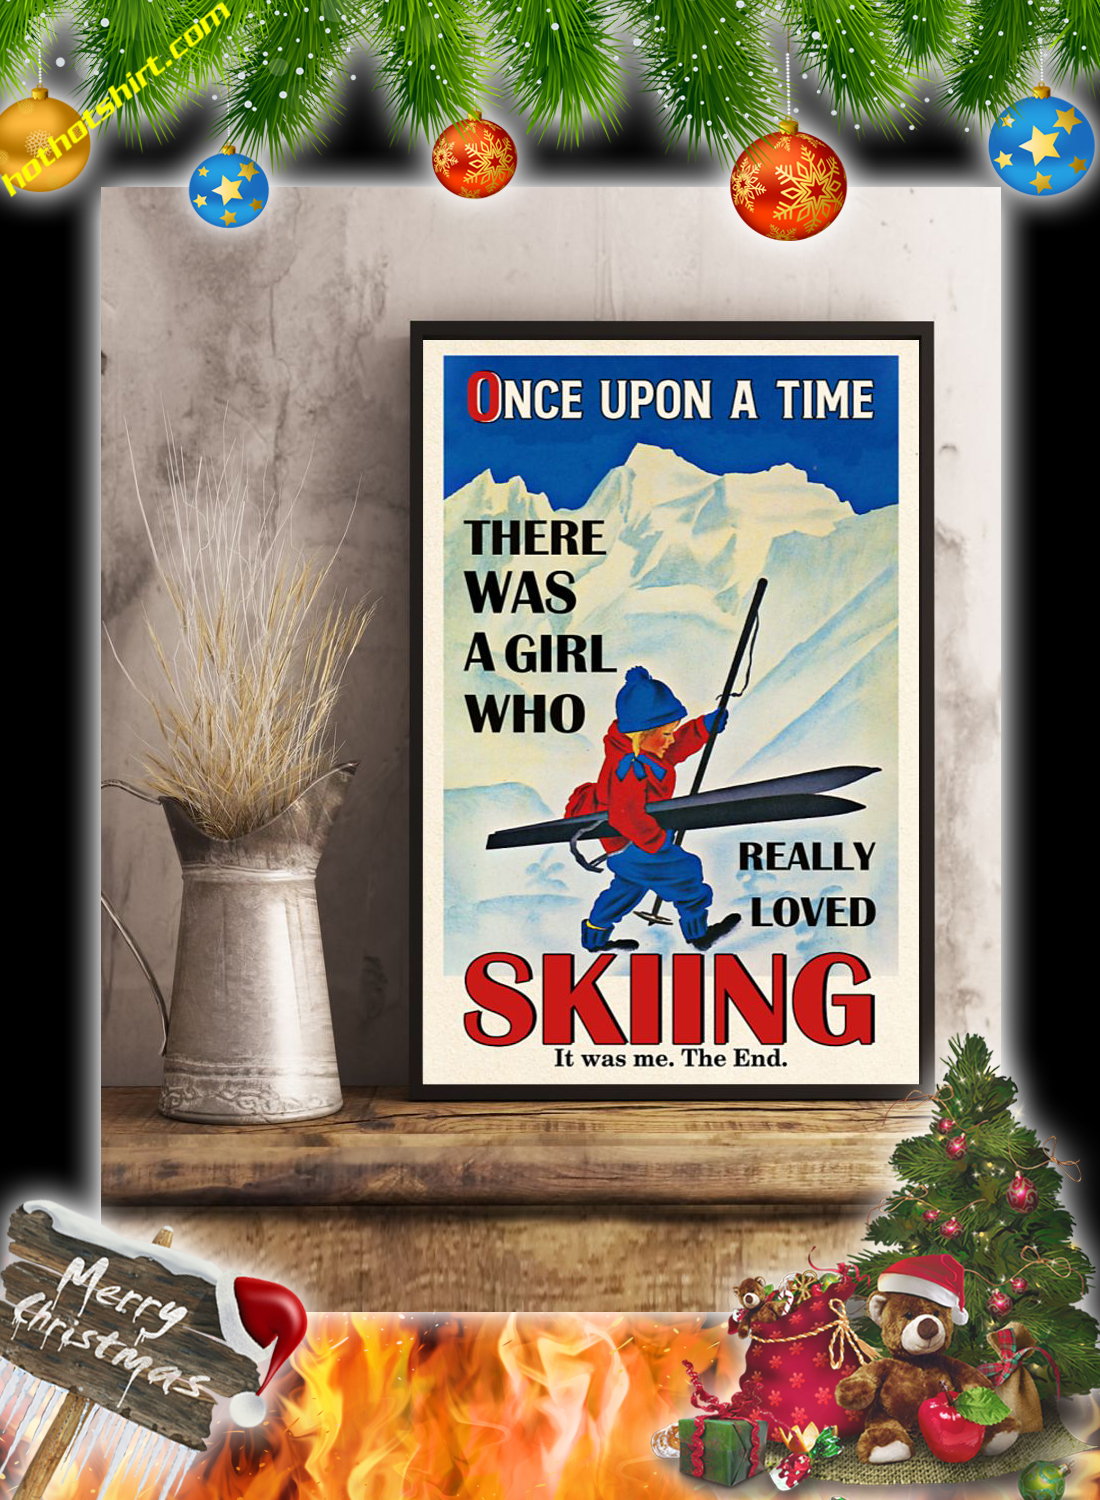 Once upon a time there was a girl who really loved skiing poster 1